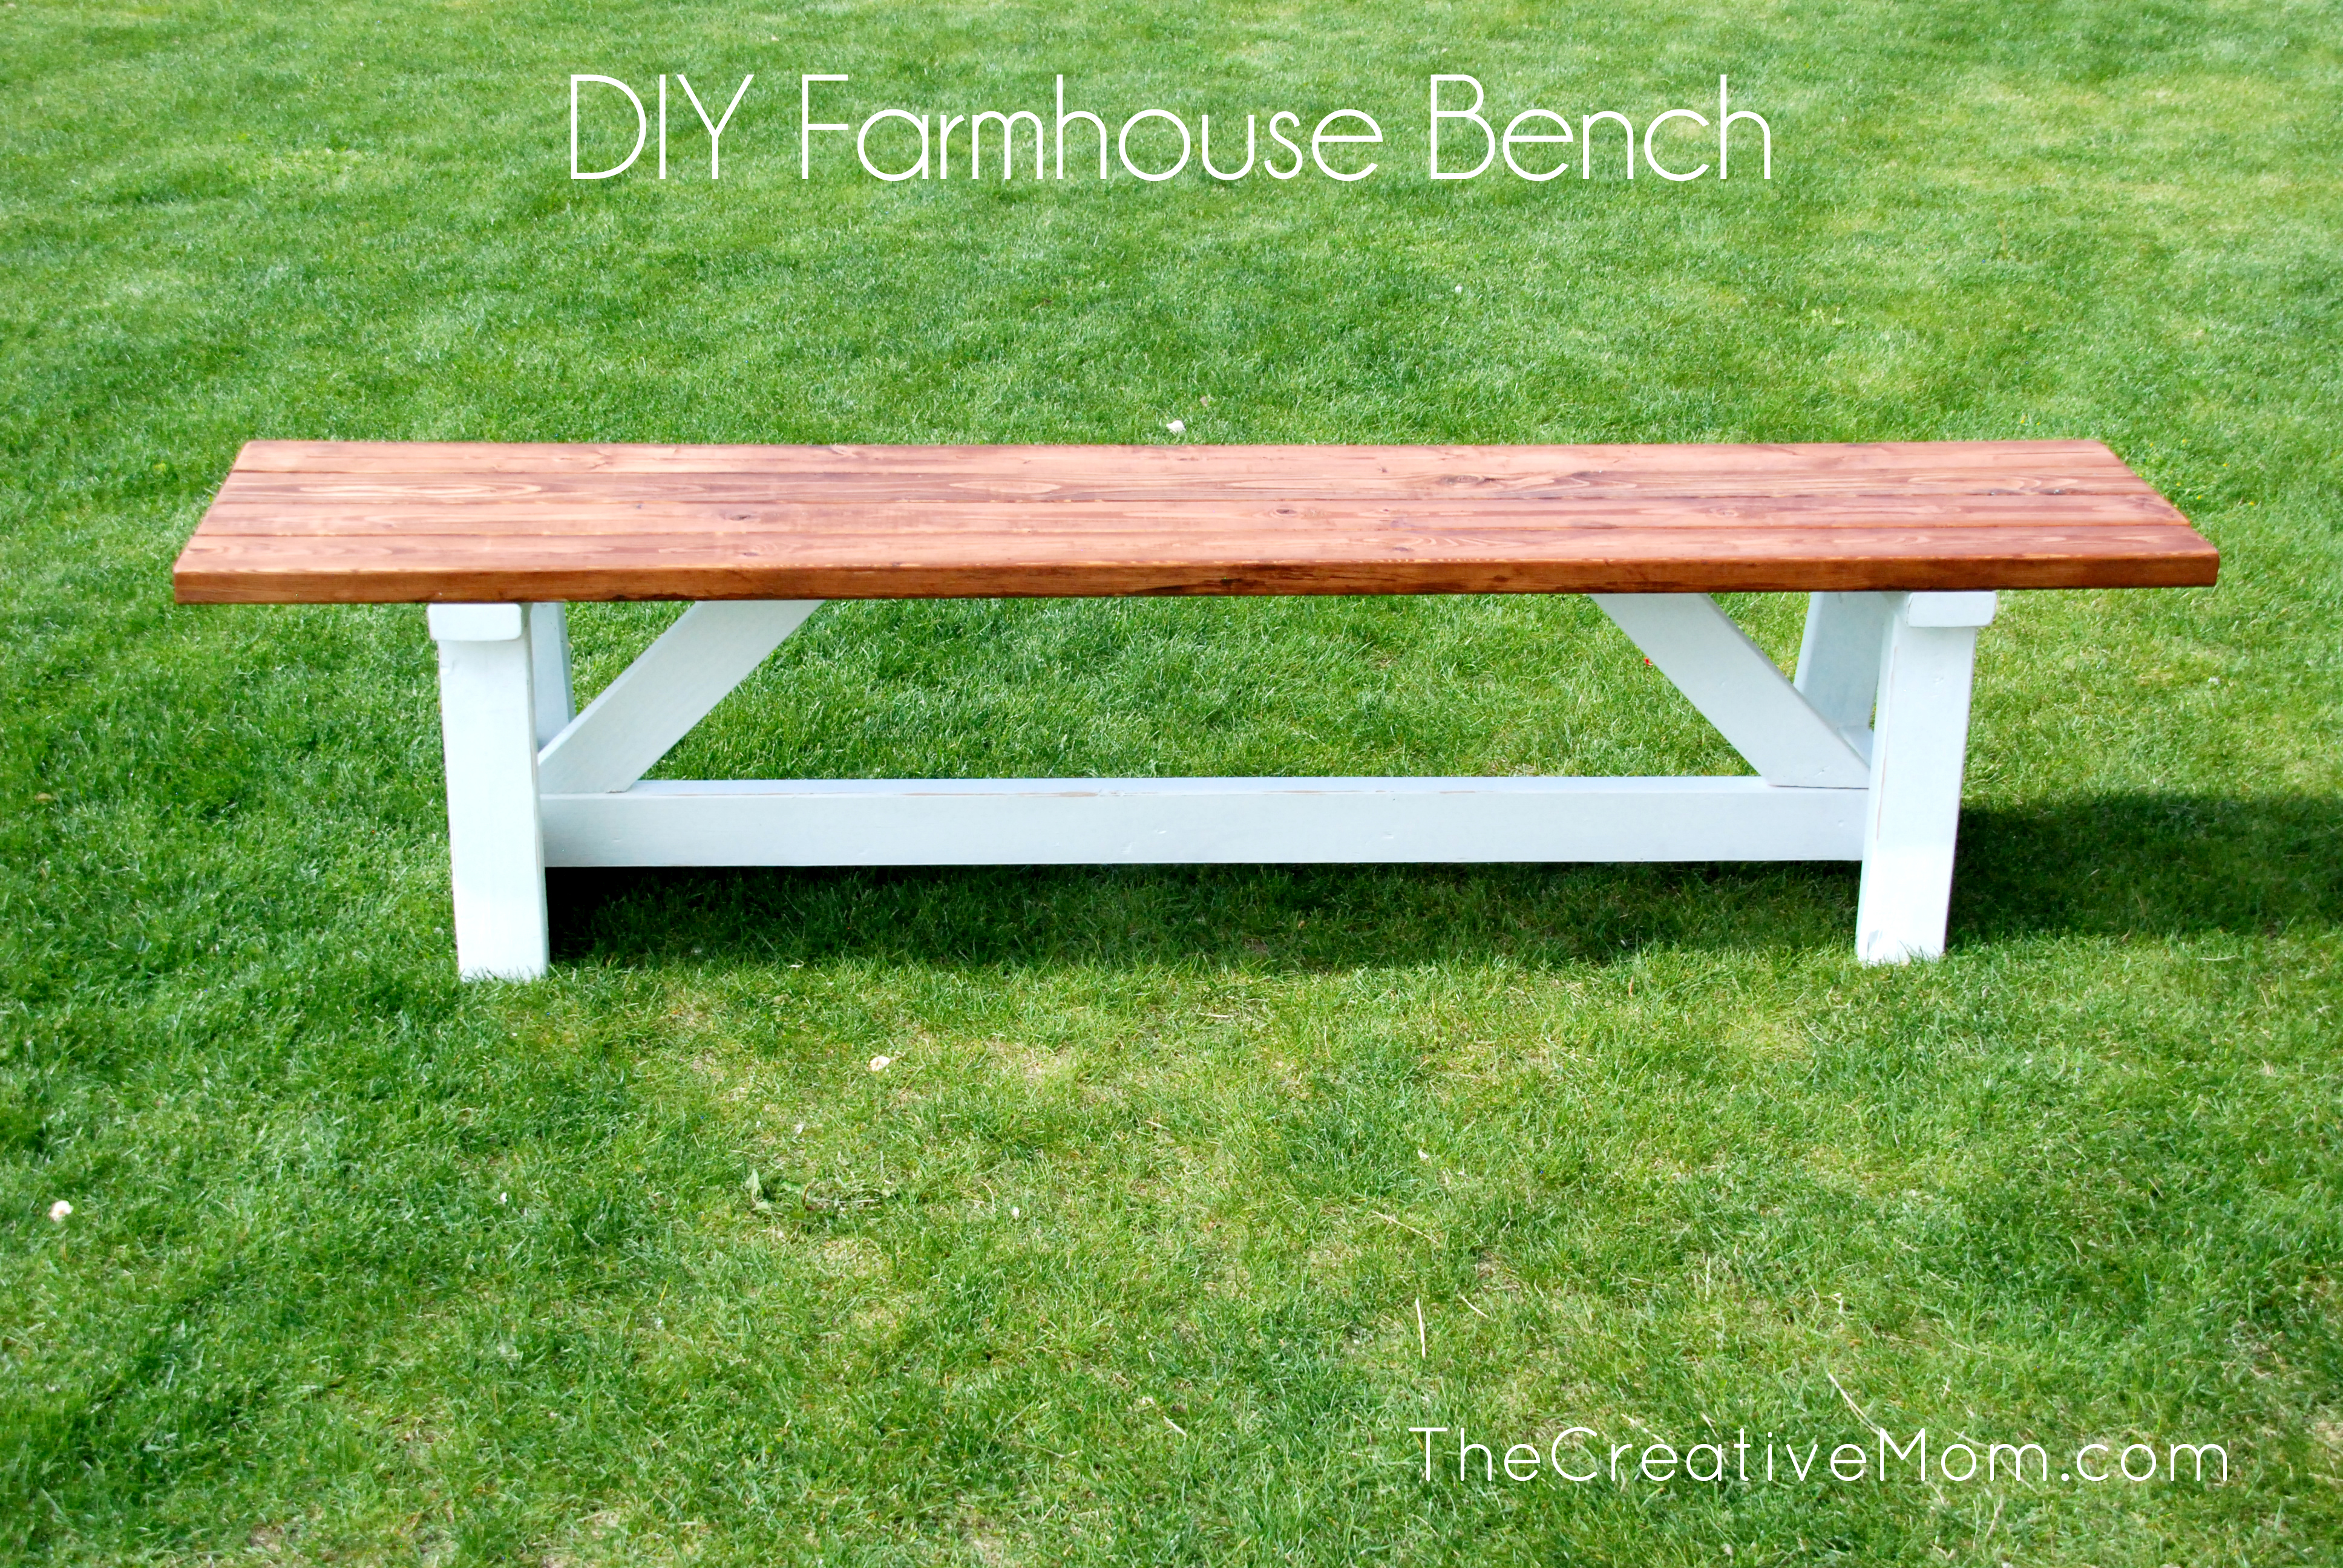 How to build a bench - The Creative Mom